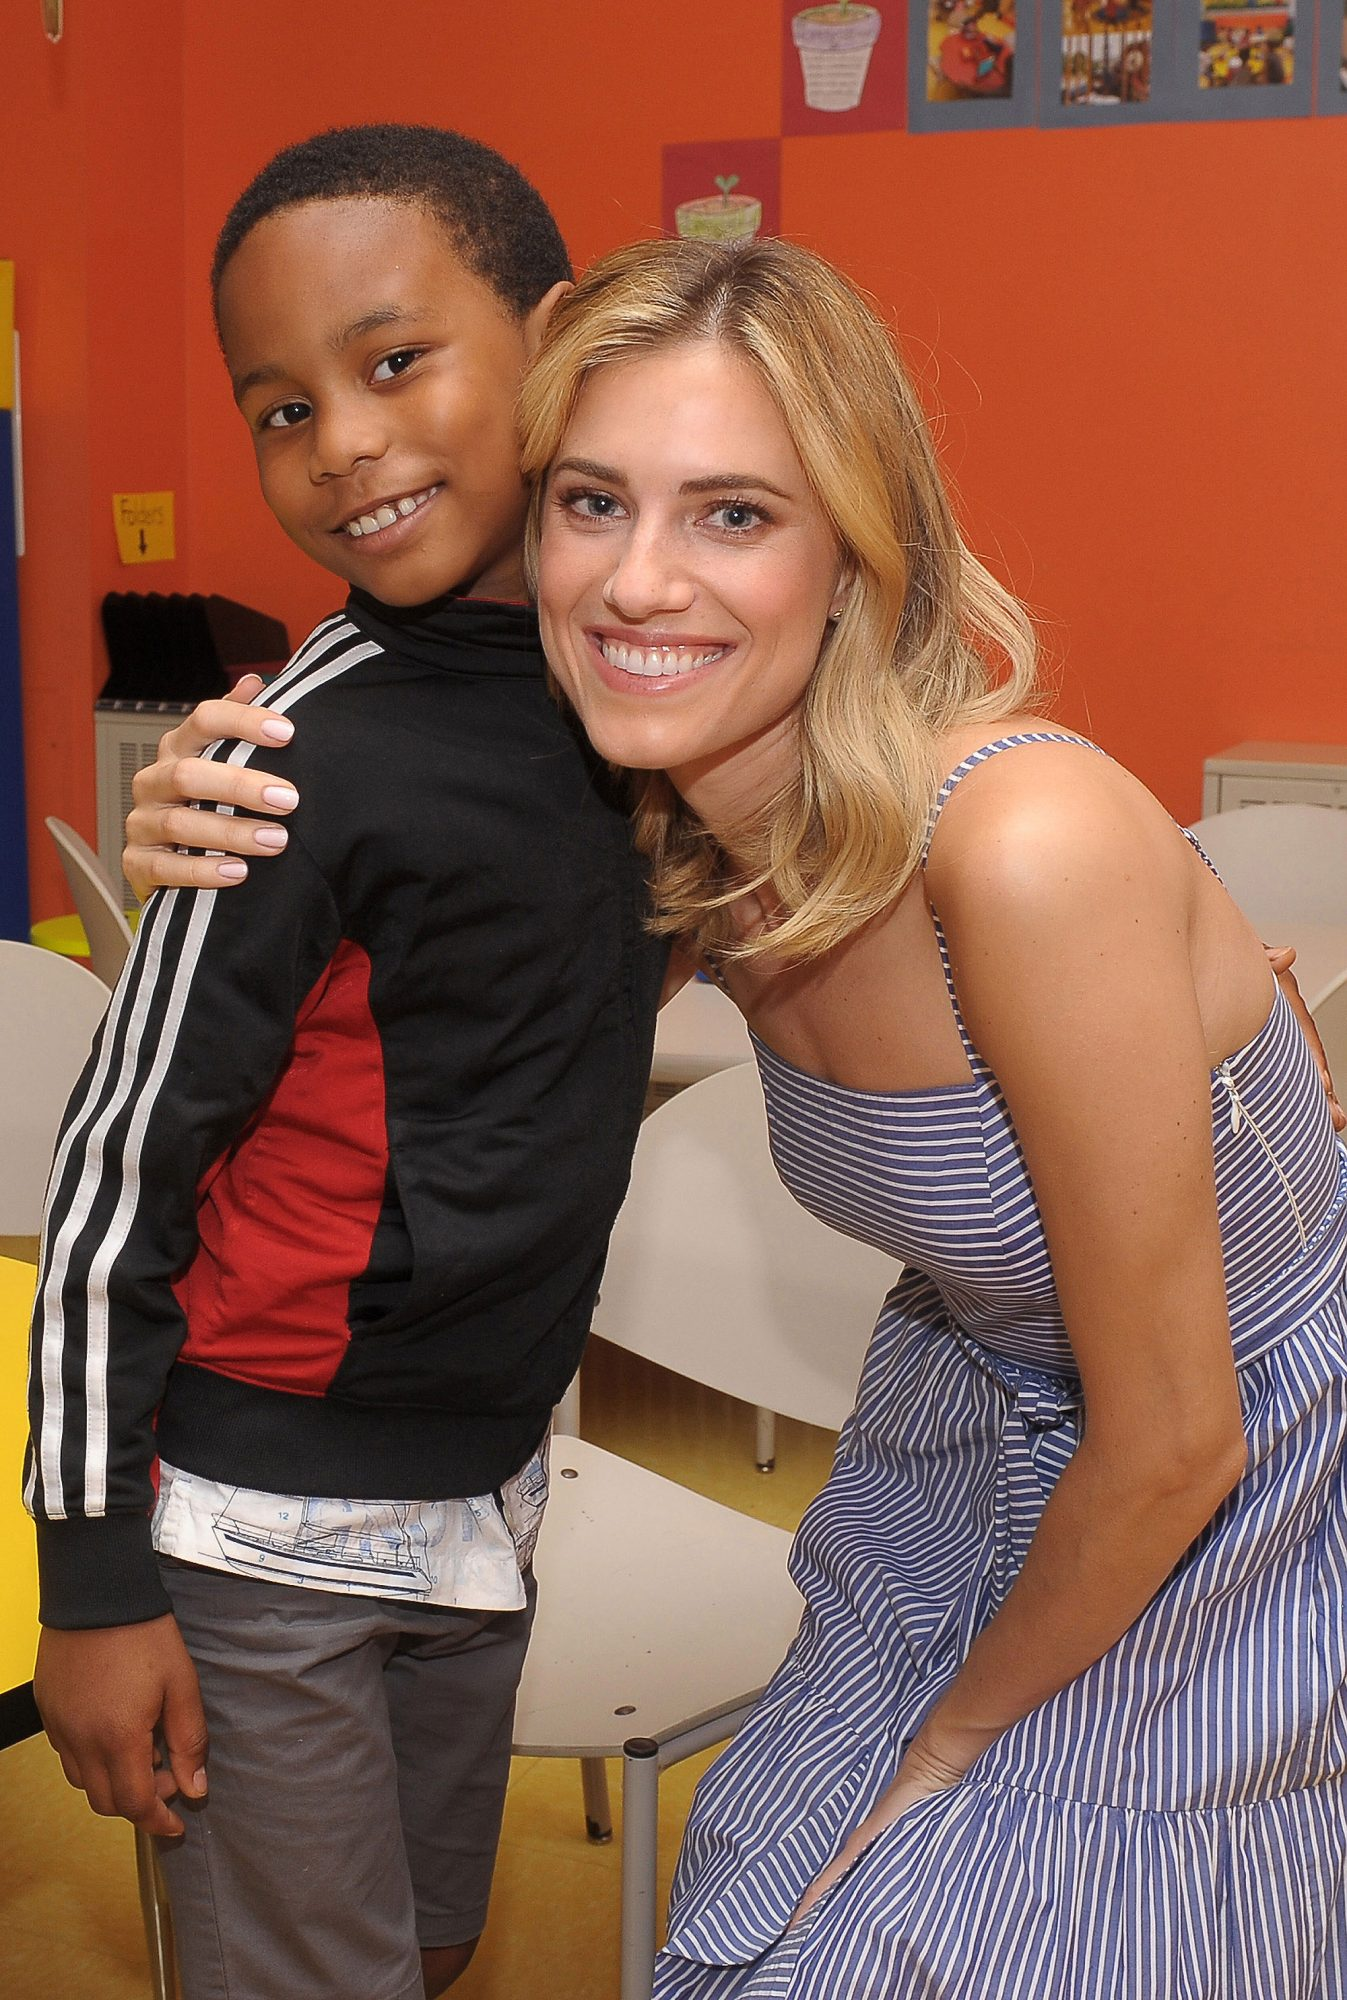 Allison Williams with students